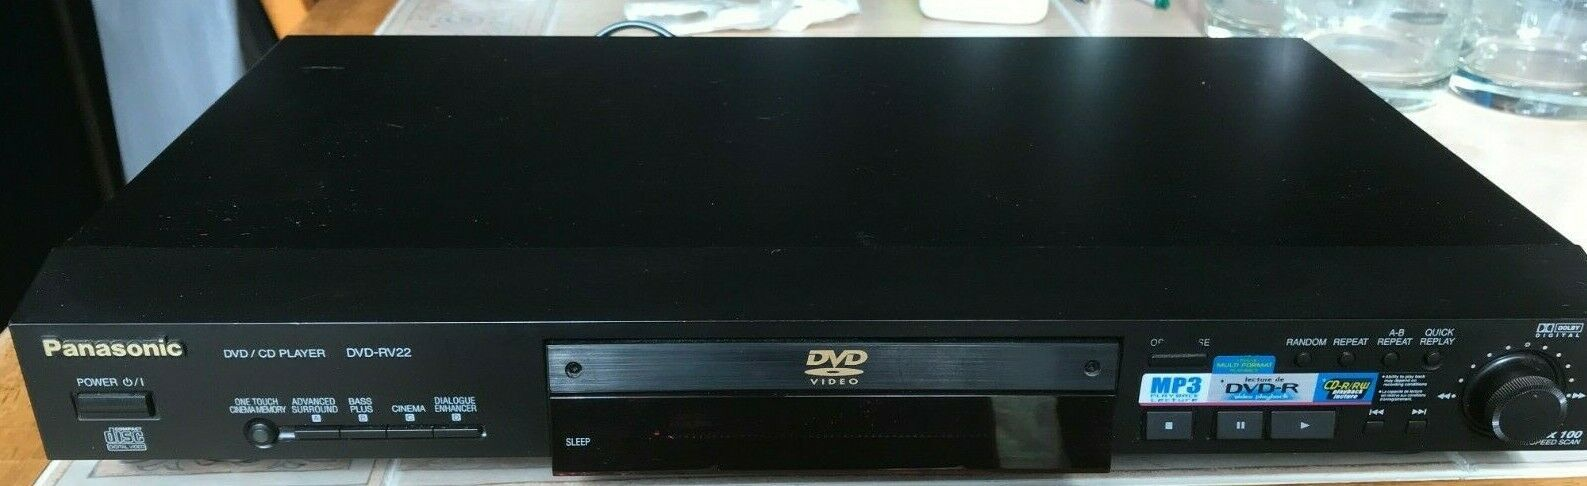 Primary image for Panasonic DVD-RV22 DVD Player With Dolby Digital DTS & Parental Lock No Remote